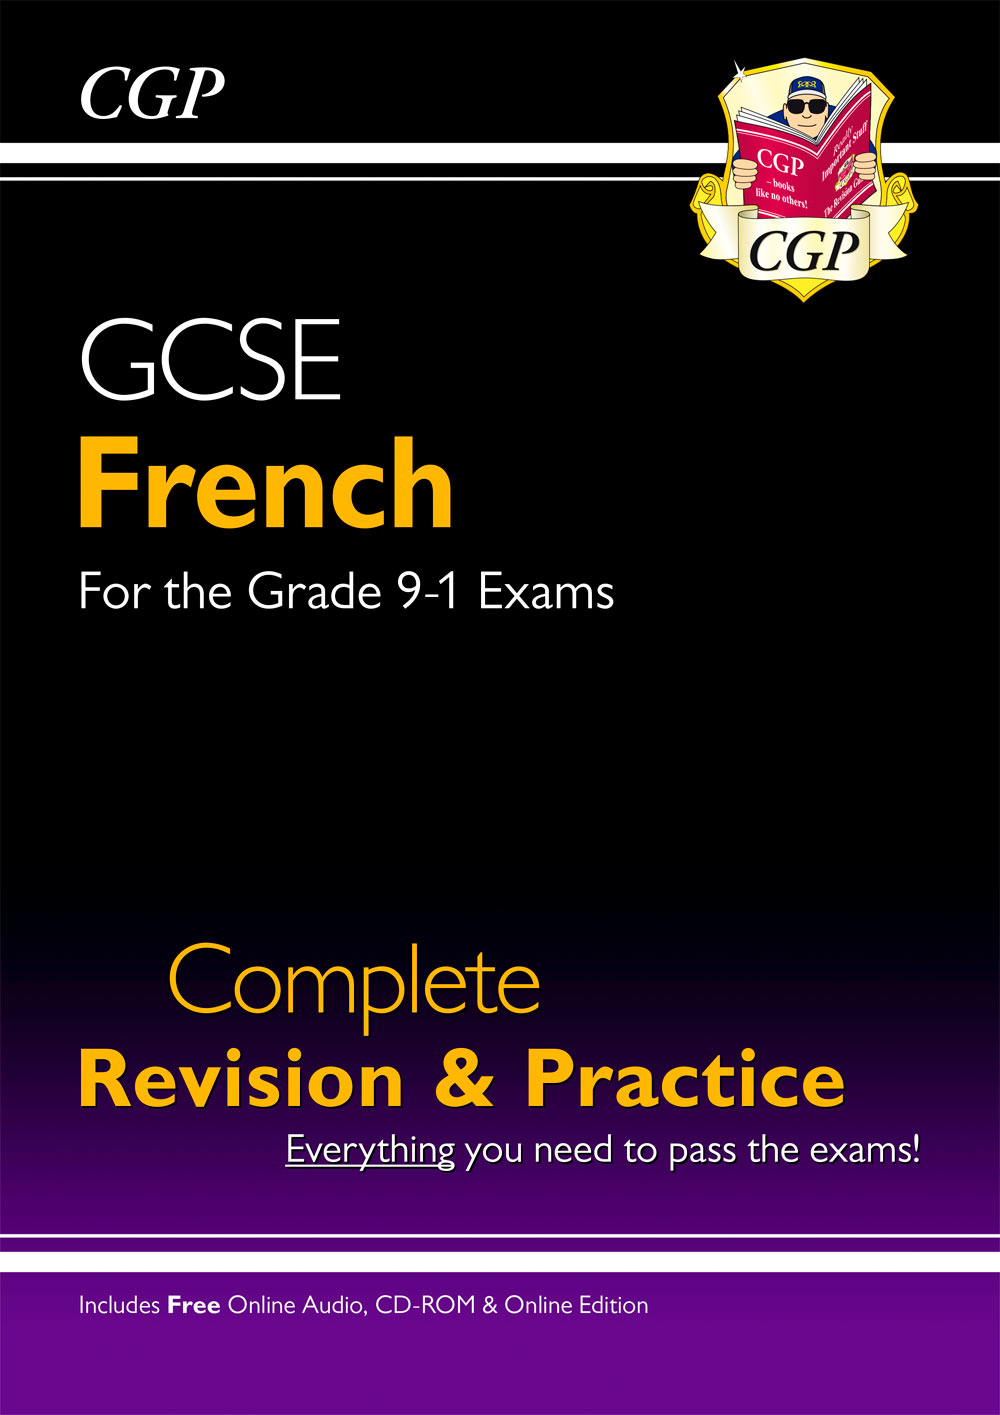 FHS44 - New GCSE French Complete Revision & Practice (with CD & Online Edition) - Grade 9-1 Course